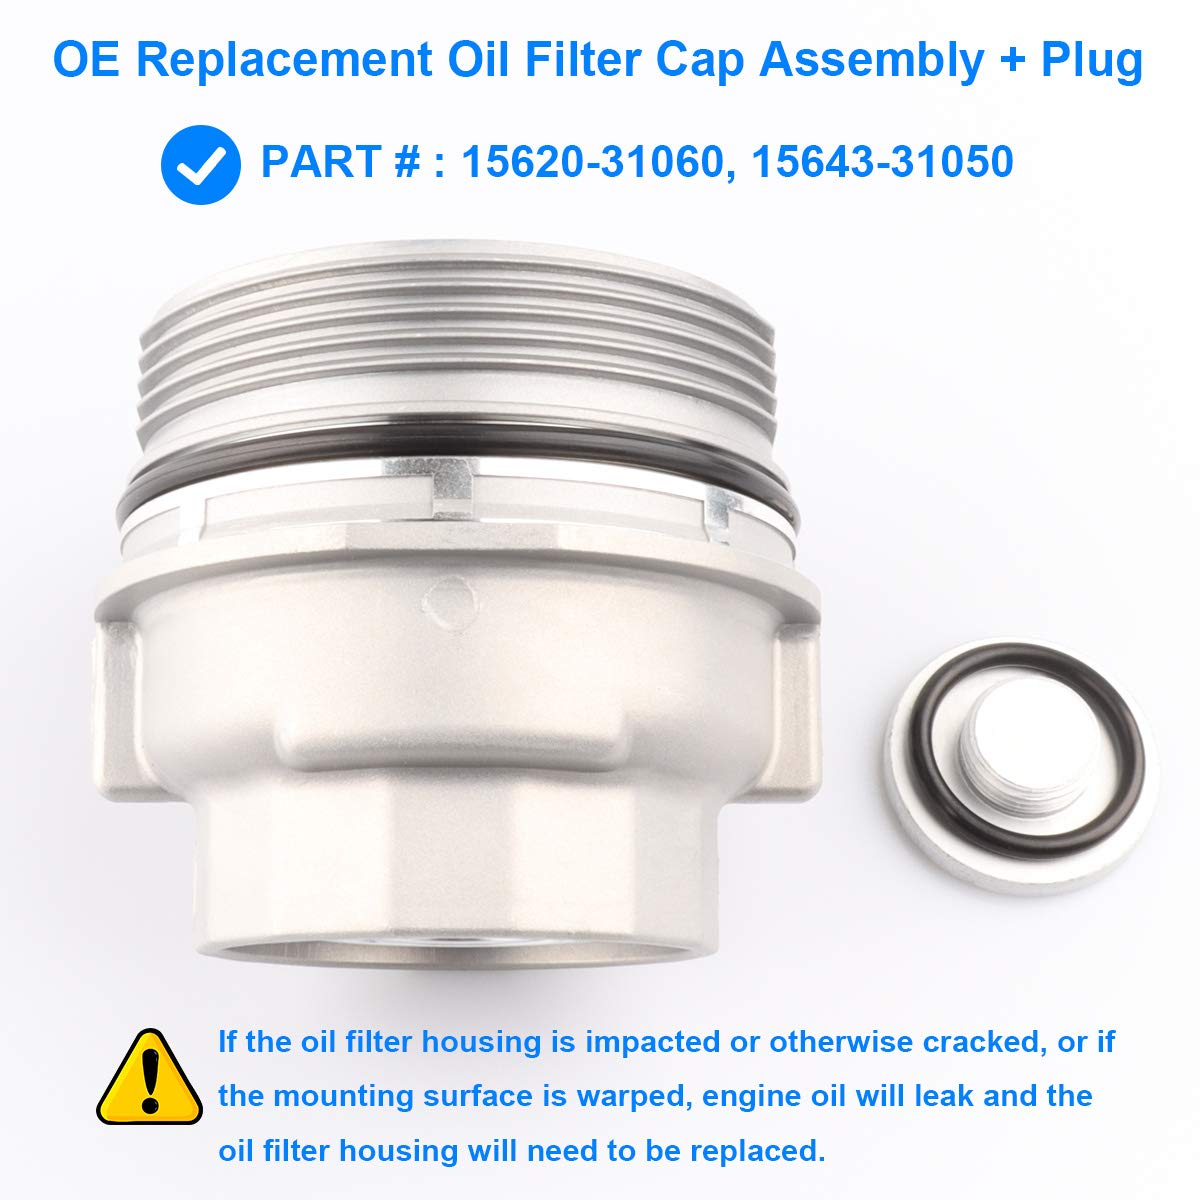 Amazon Com Oil Filter Housing Cap Assembly With Oil Plug Replace 15620 31060 1562031060 15643 31050 Compatible With Toyota 4runner Avalon Camry Fj Cruiser Highlander Rav4 Sienna Tacoma Tundra Venza More Automotive